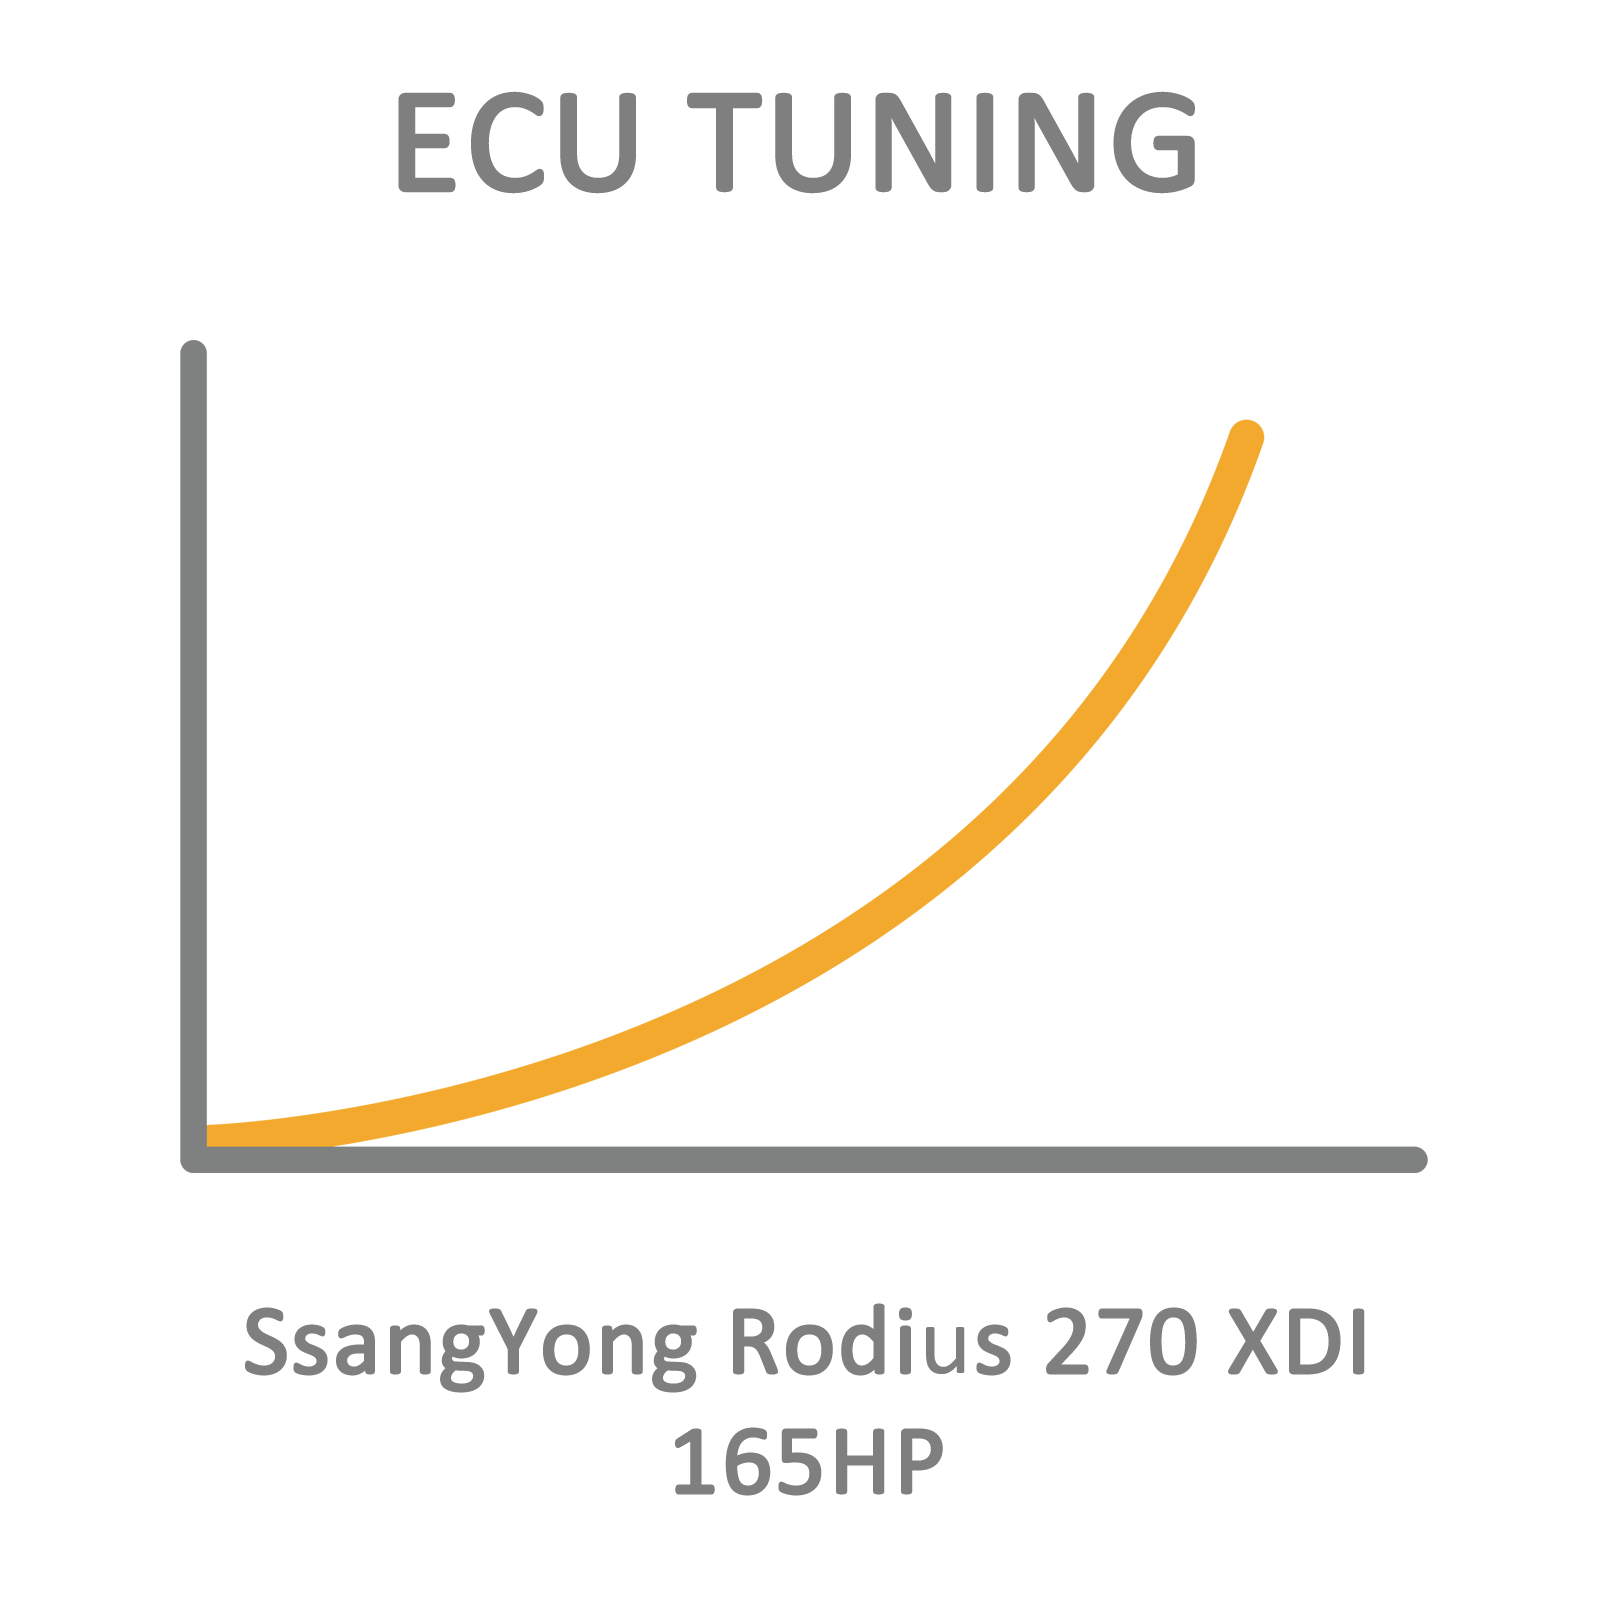 SsangYong Rodius 270 XDI 165HP ECU Tuning Remapping